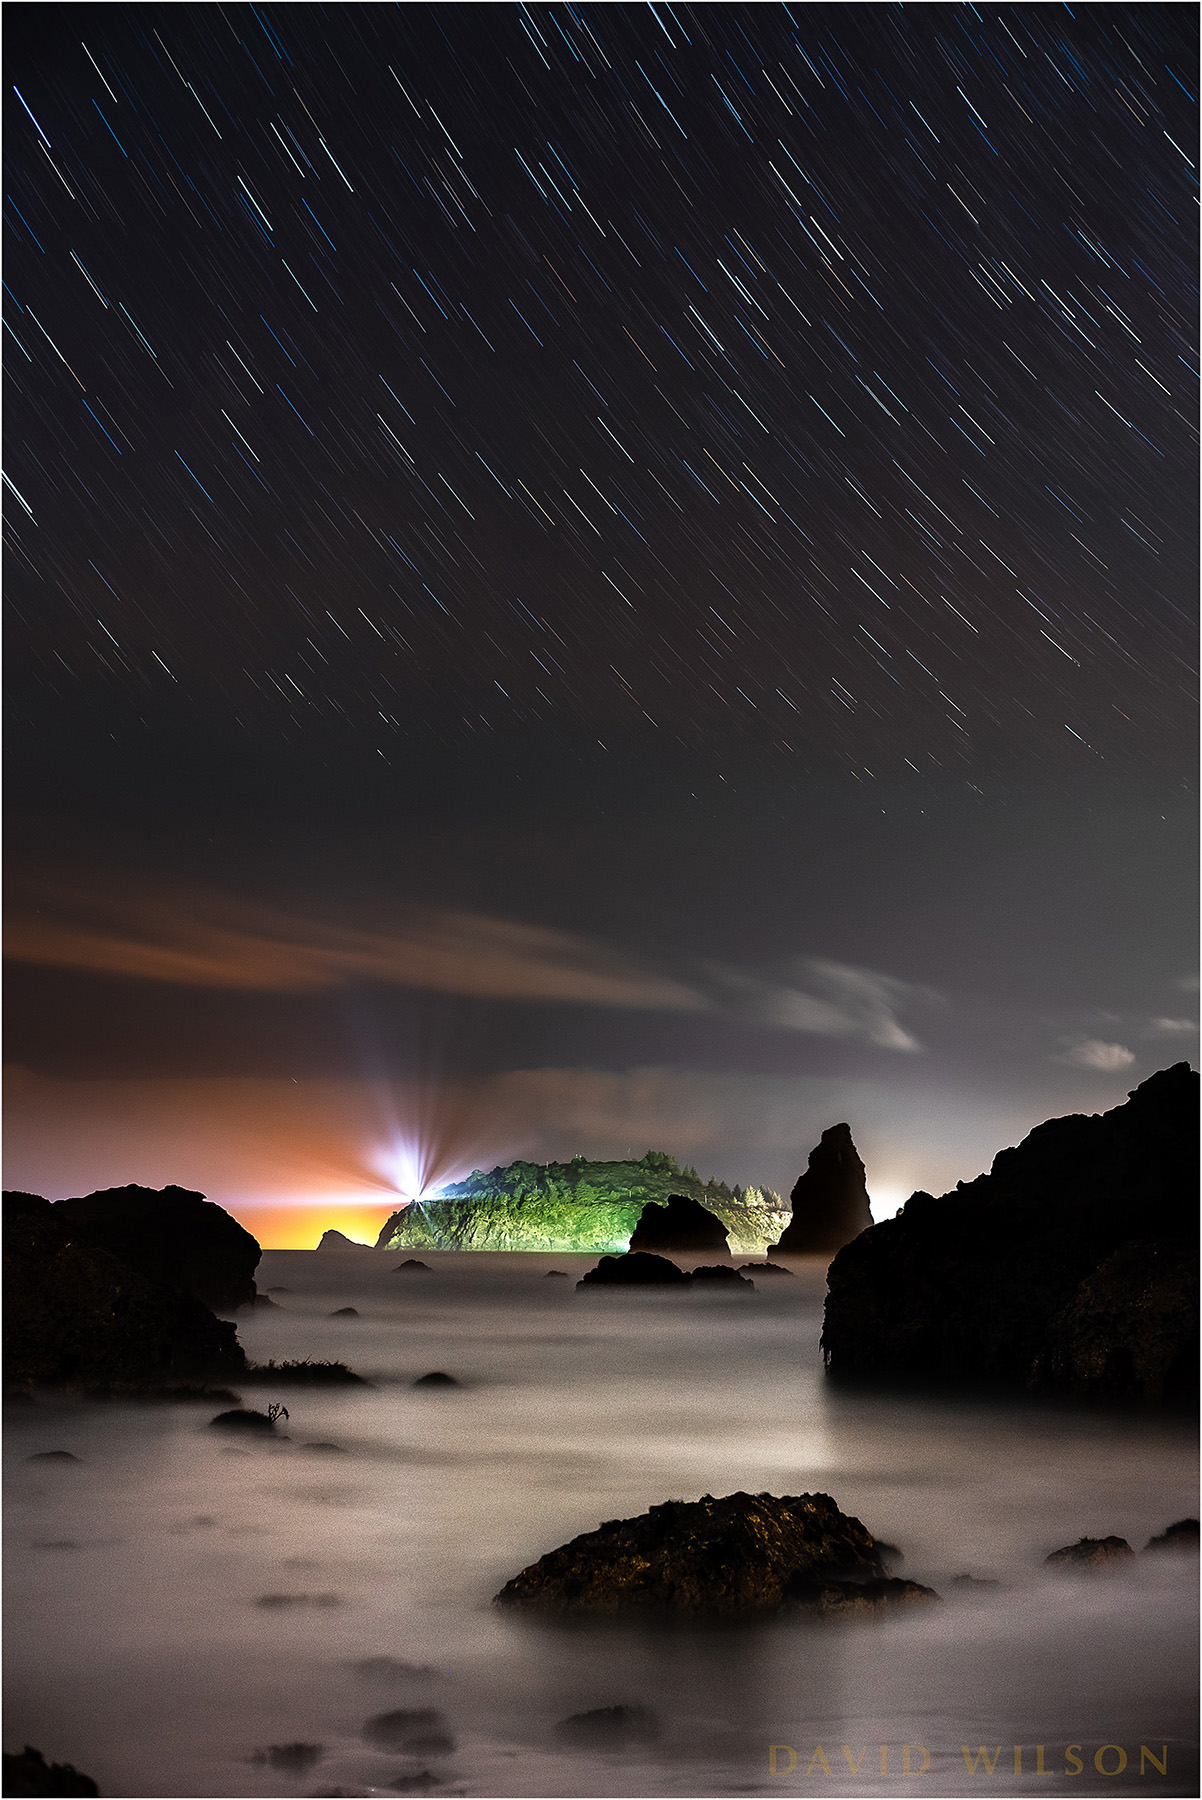 Looking north toward Trinidad and Trinidad Head from Houda Point Beach, Humboldt County, California. This is actually a little west of north, as you can see from the arc of the star trails that the North Star, Polaris, would be above and to the right of this view. The star trails closer to the cloud layer appear to break up in places due to being partially obscured at times by the moving clouds. Like a skylight cover the cloud layer slid until the stars were replaced by grey. Same thing happened to my hair.